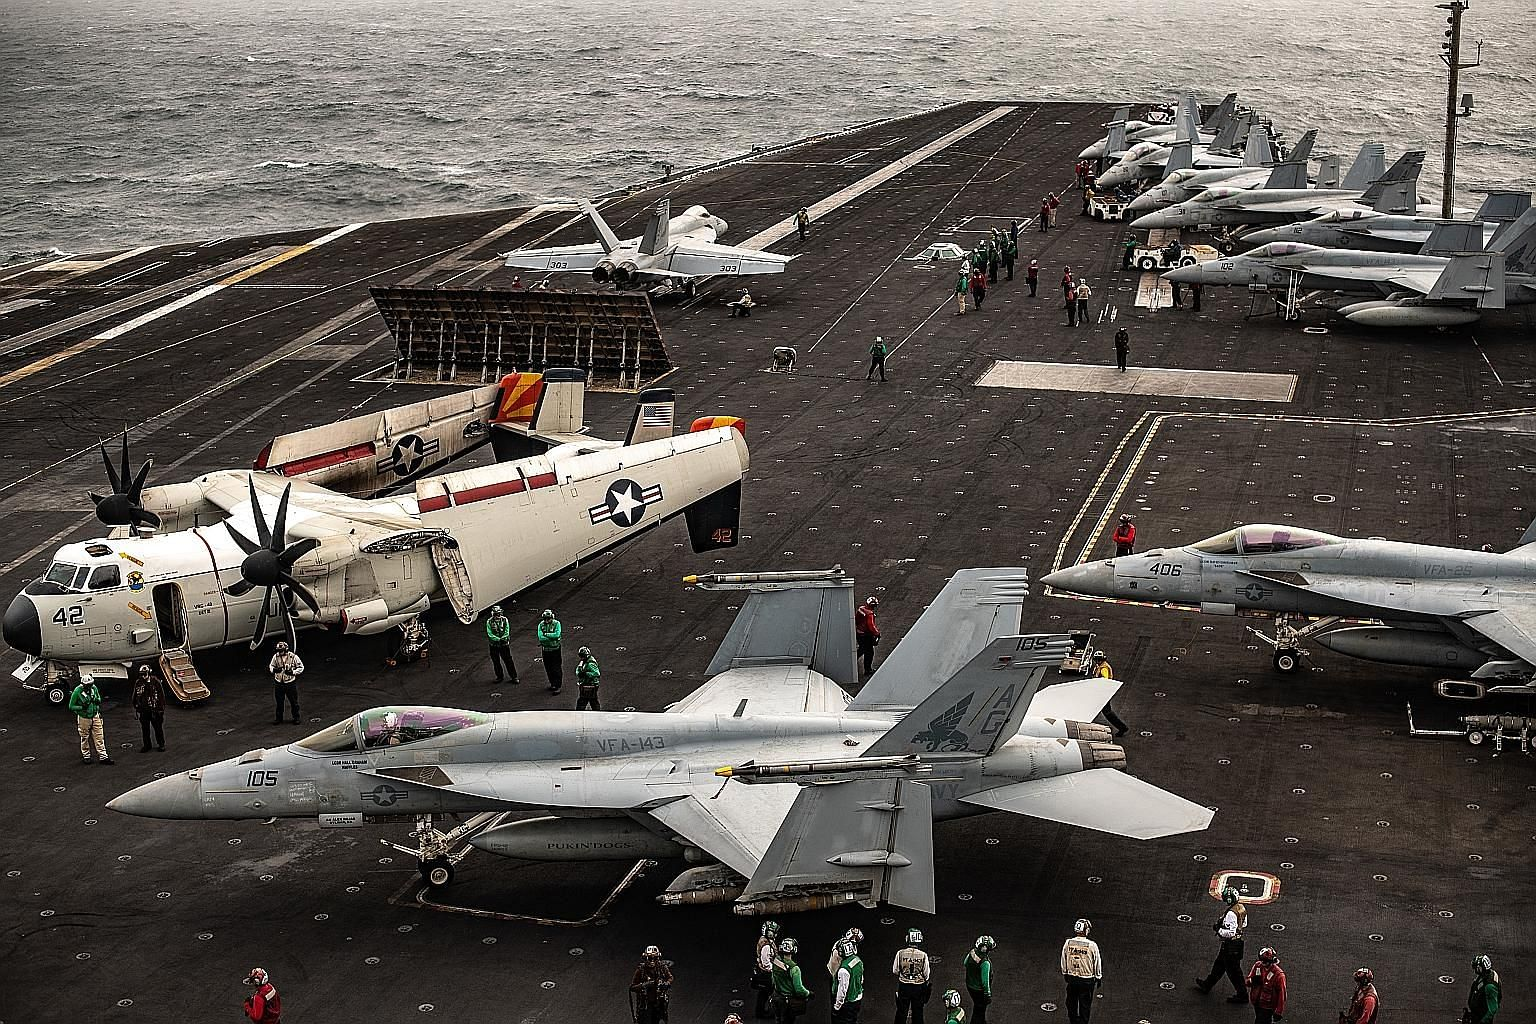 Aircraft on the flight deck of the USS Abraham Lincoln, in the North Arabian Sea. The ship was preparing to launch an attack against Iran on June 20, but the final order never came. PHOTO: NYTIMES